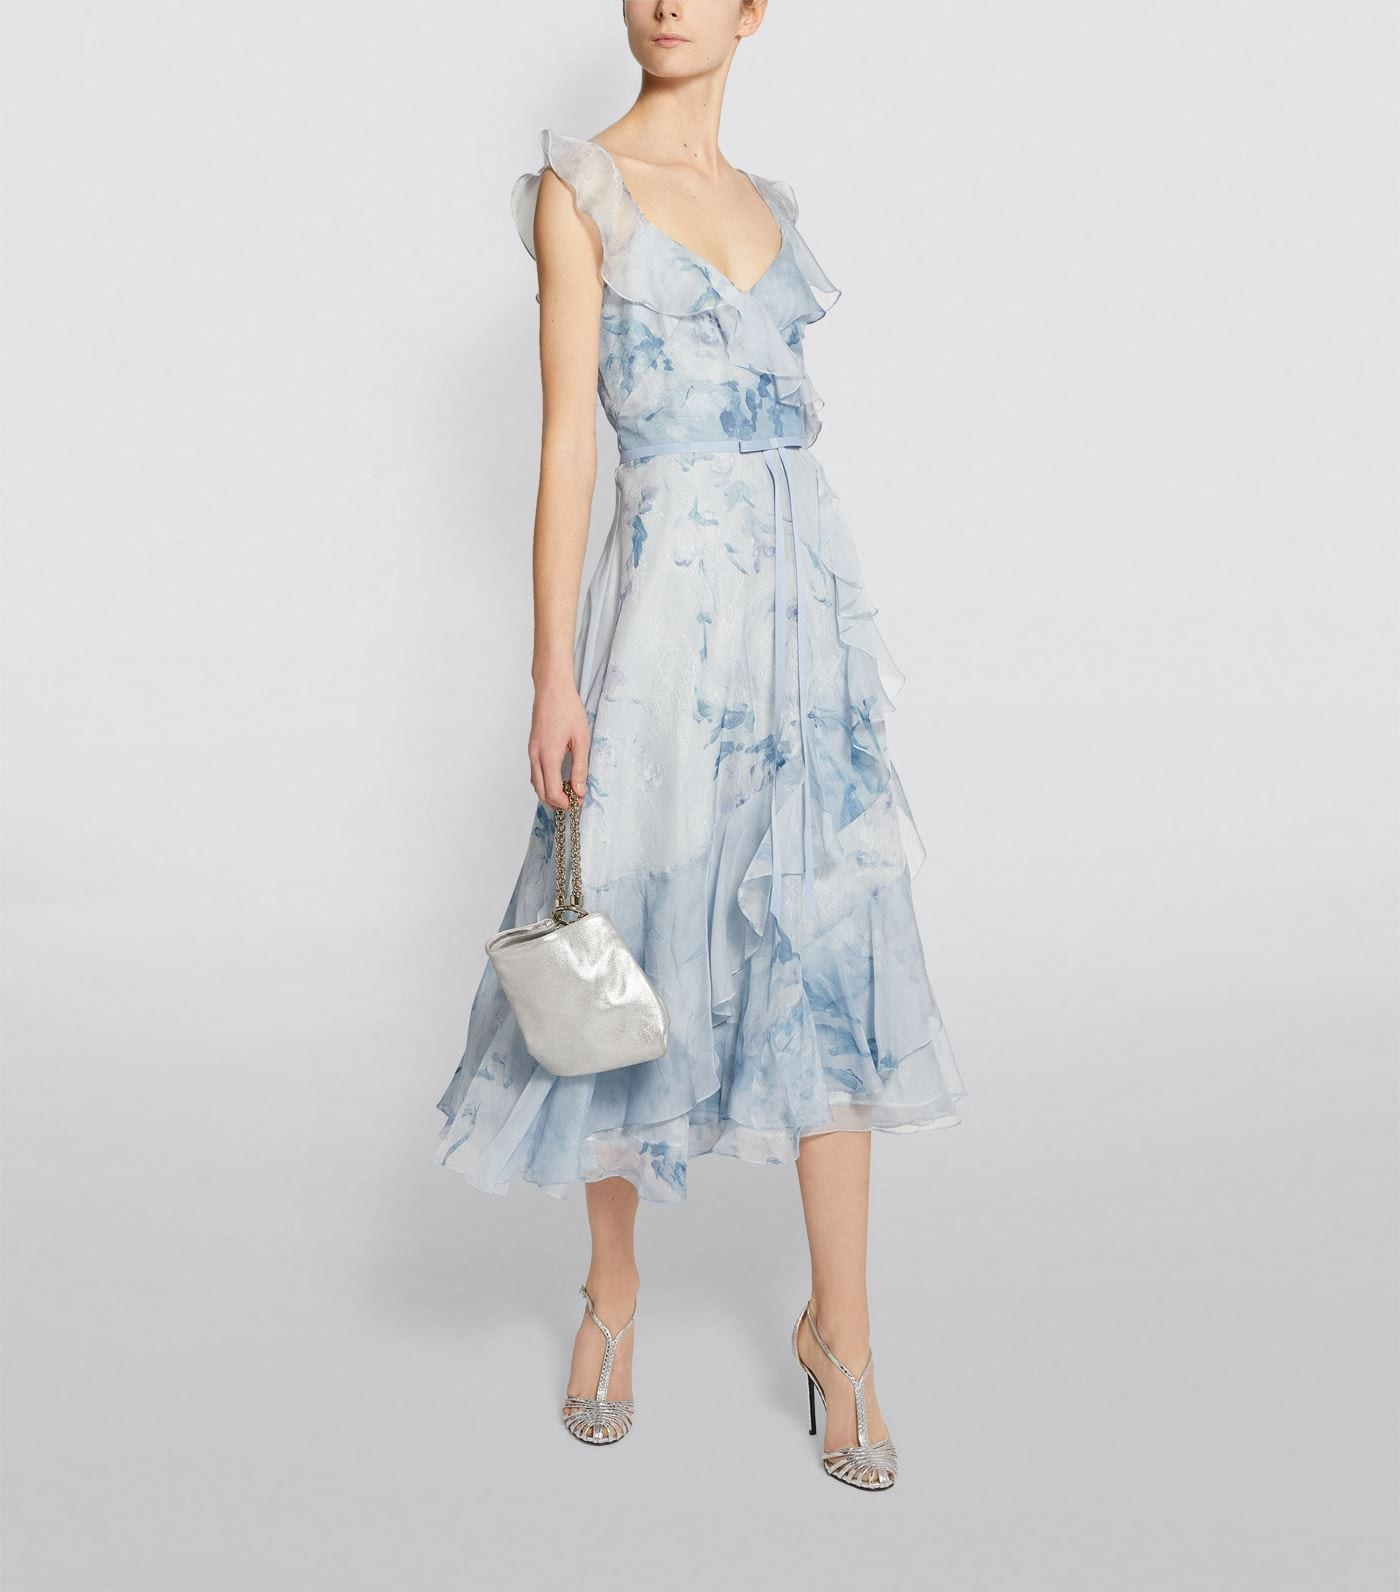 MARCHESA NOTTE Chiffon and Lace Tea-Length Dress